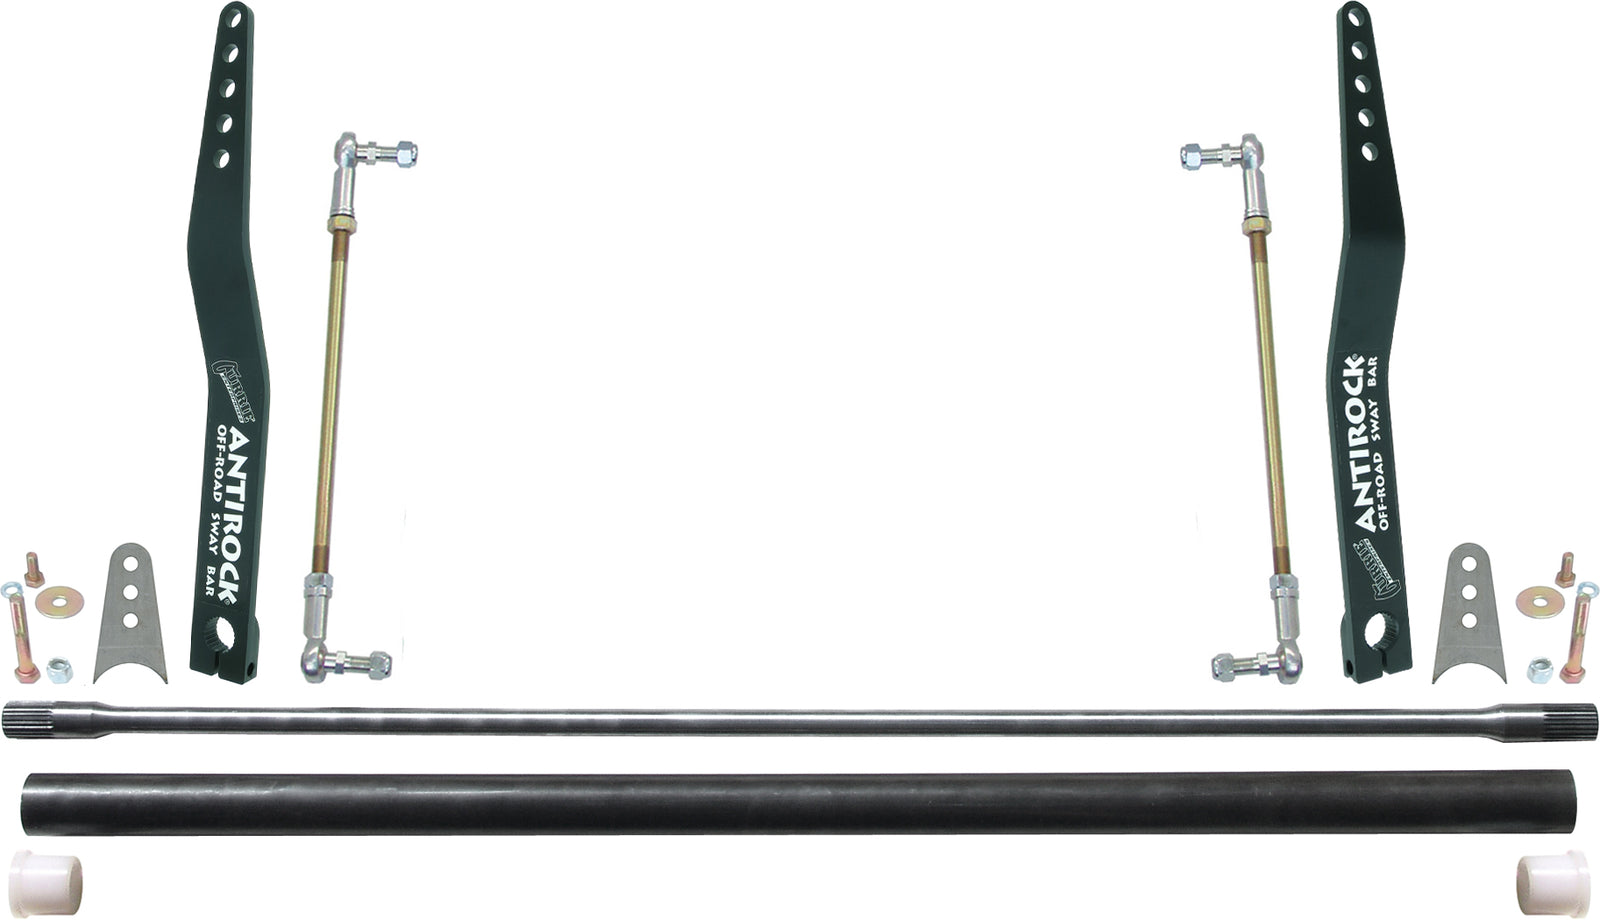 Antirock Sway Bar Kit Universal 36 Inch Bar 20 Inch Bent Steel Arms RockJock 4x4